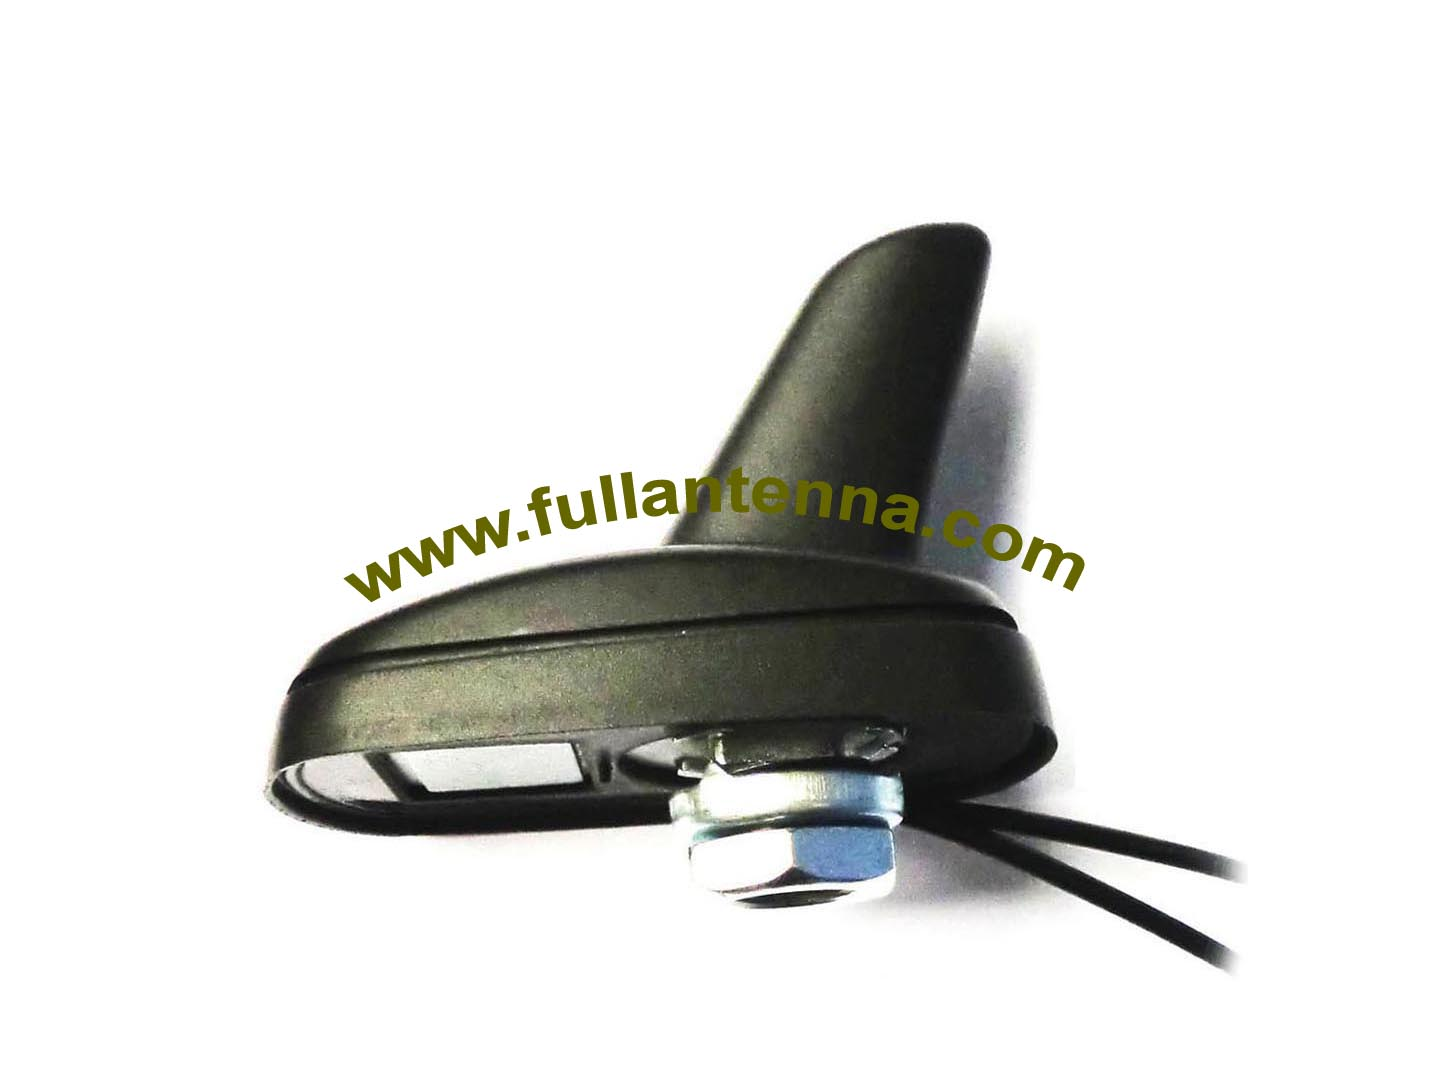 P/N:FAGPSGlonassGSM.06,2 In 1 Combined Antenna, GNSS GSM antenna